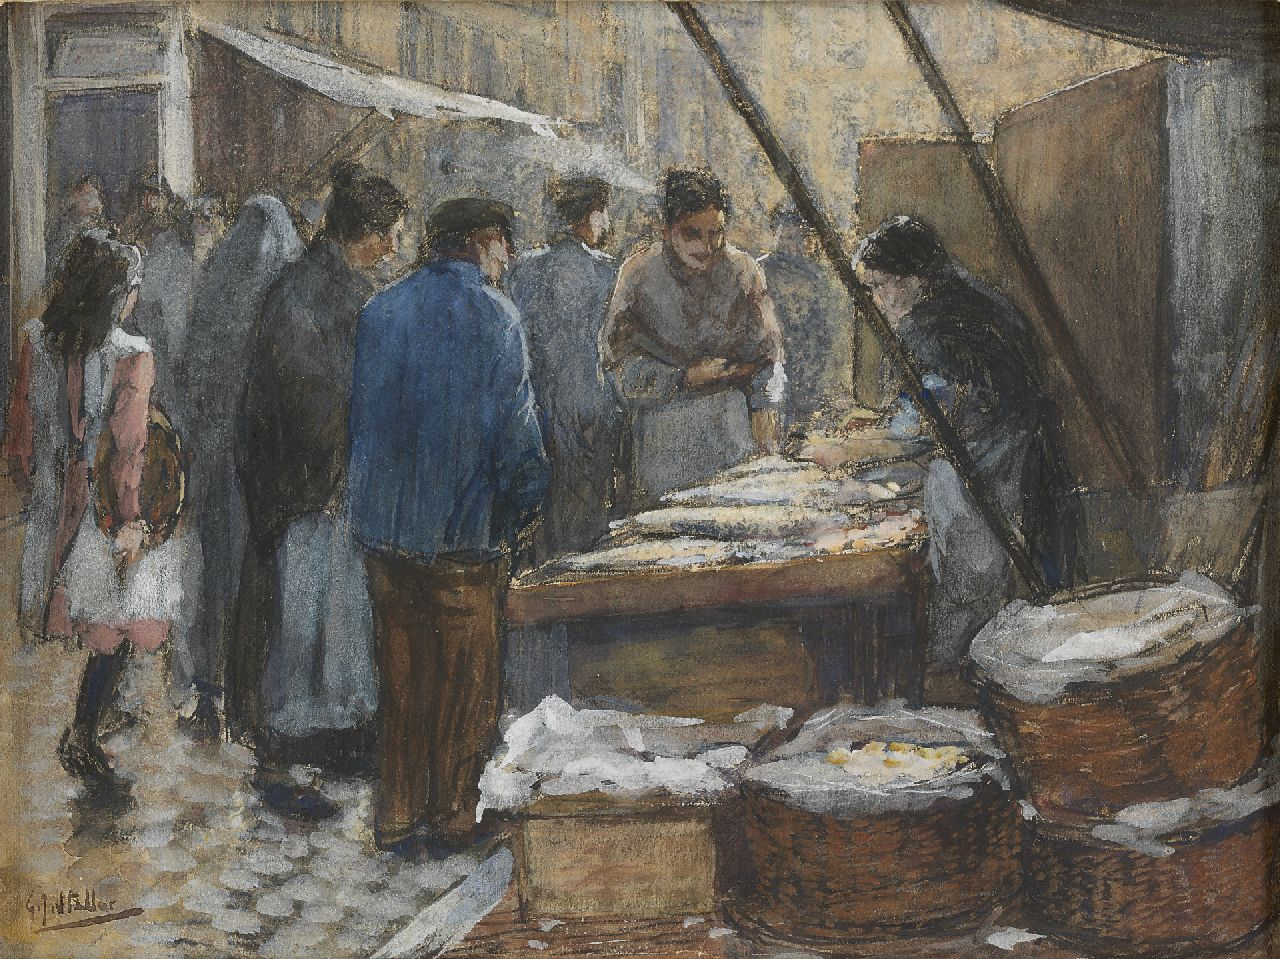 Staller G.J.  | Gerard Johan Staller, Figures at a fish market stall, Amsterdam, watercolour and gouache on paper 17.5 x 23.5 cm, signed l.l.